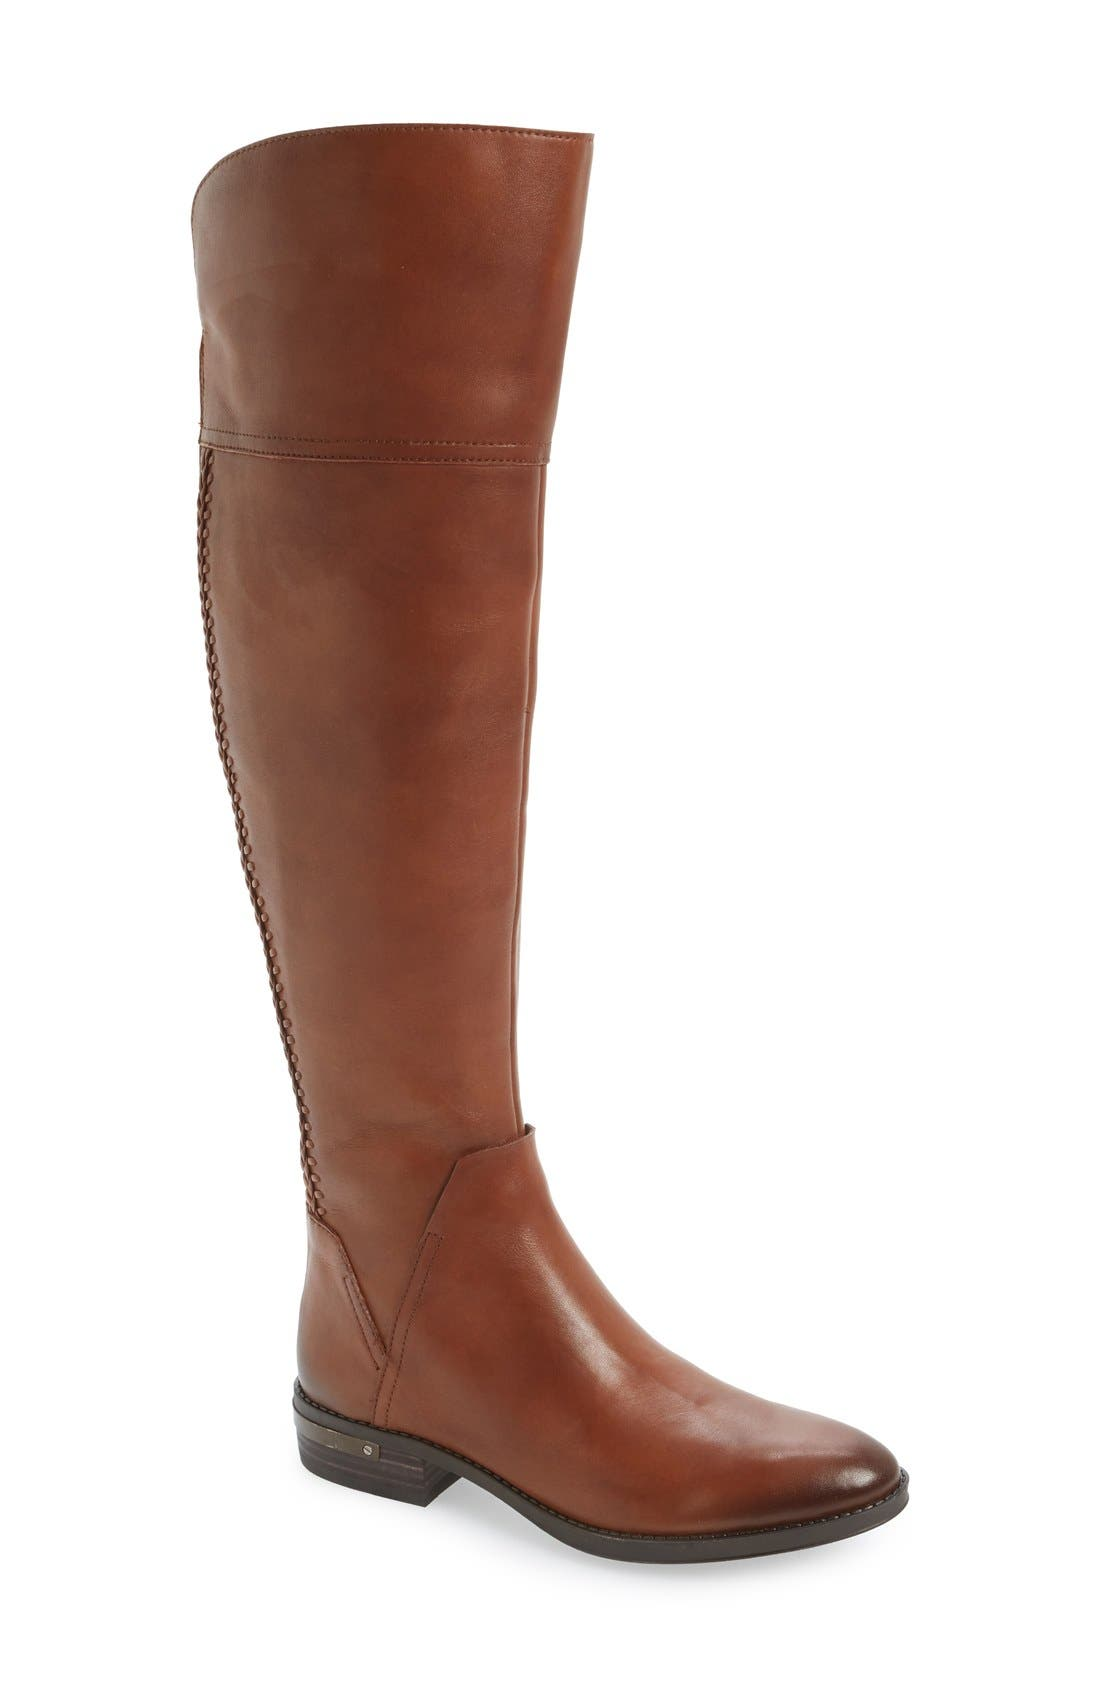 Alternate Image 1 Selected - Vince Camuto 'Pedra' Wide Calf Over the Knee Boot (Women)